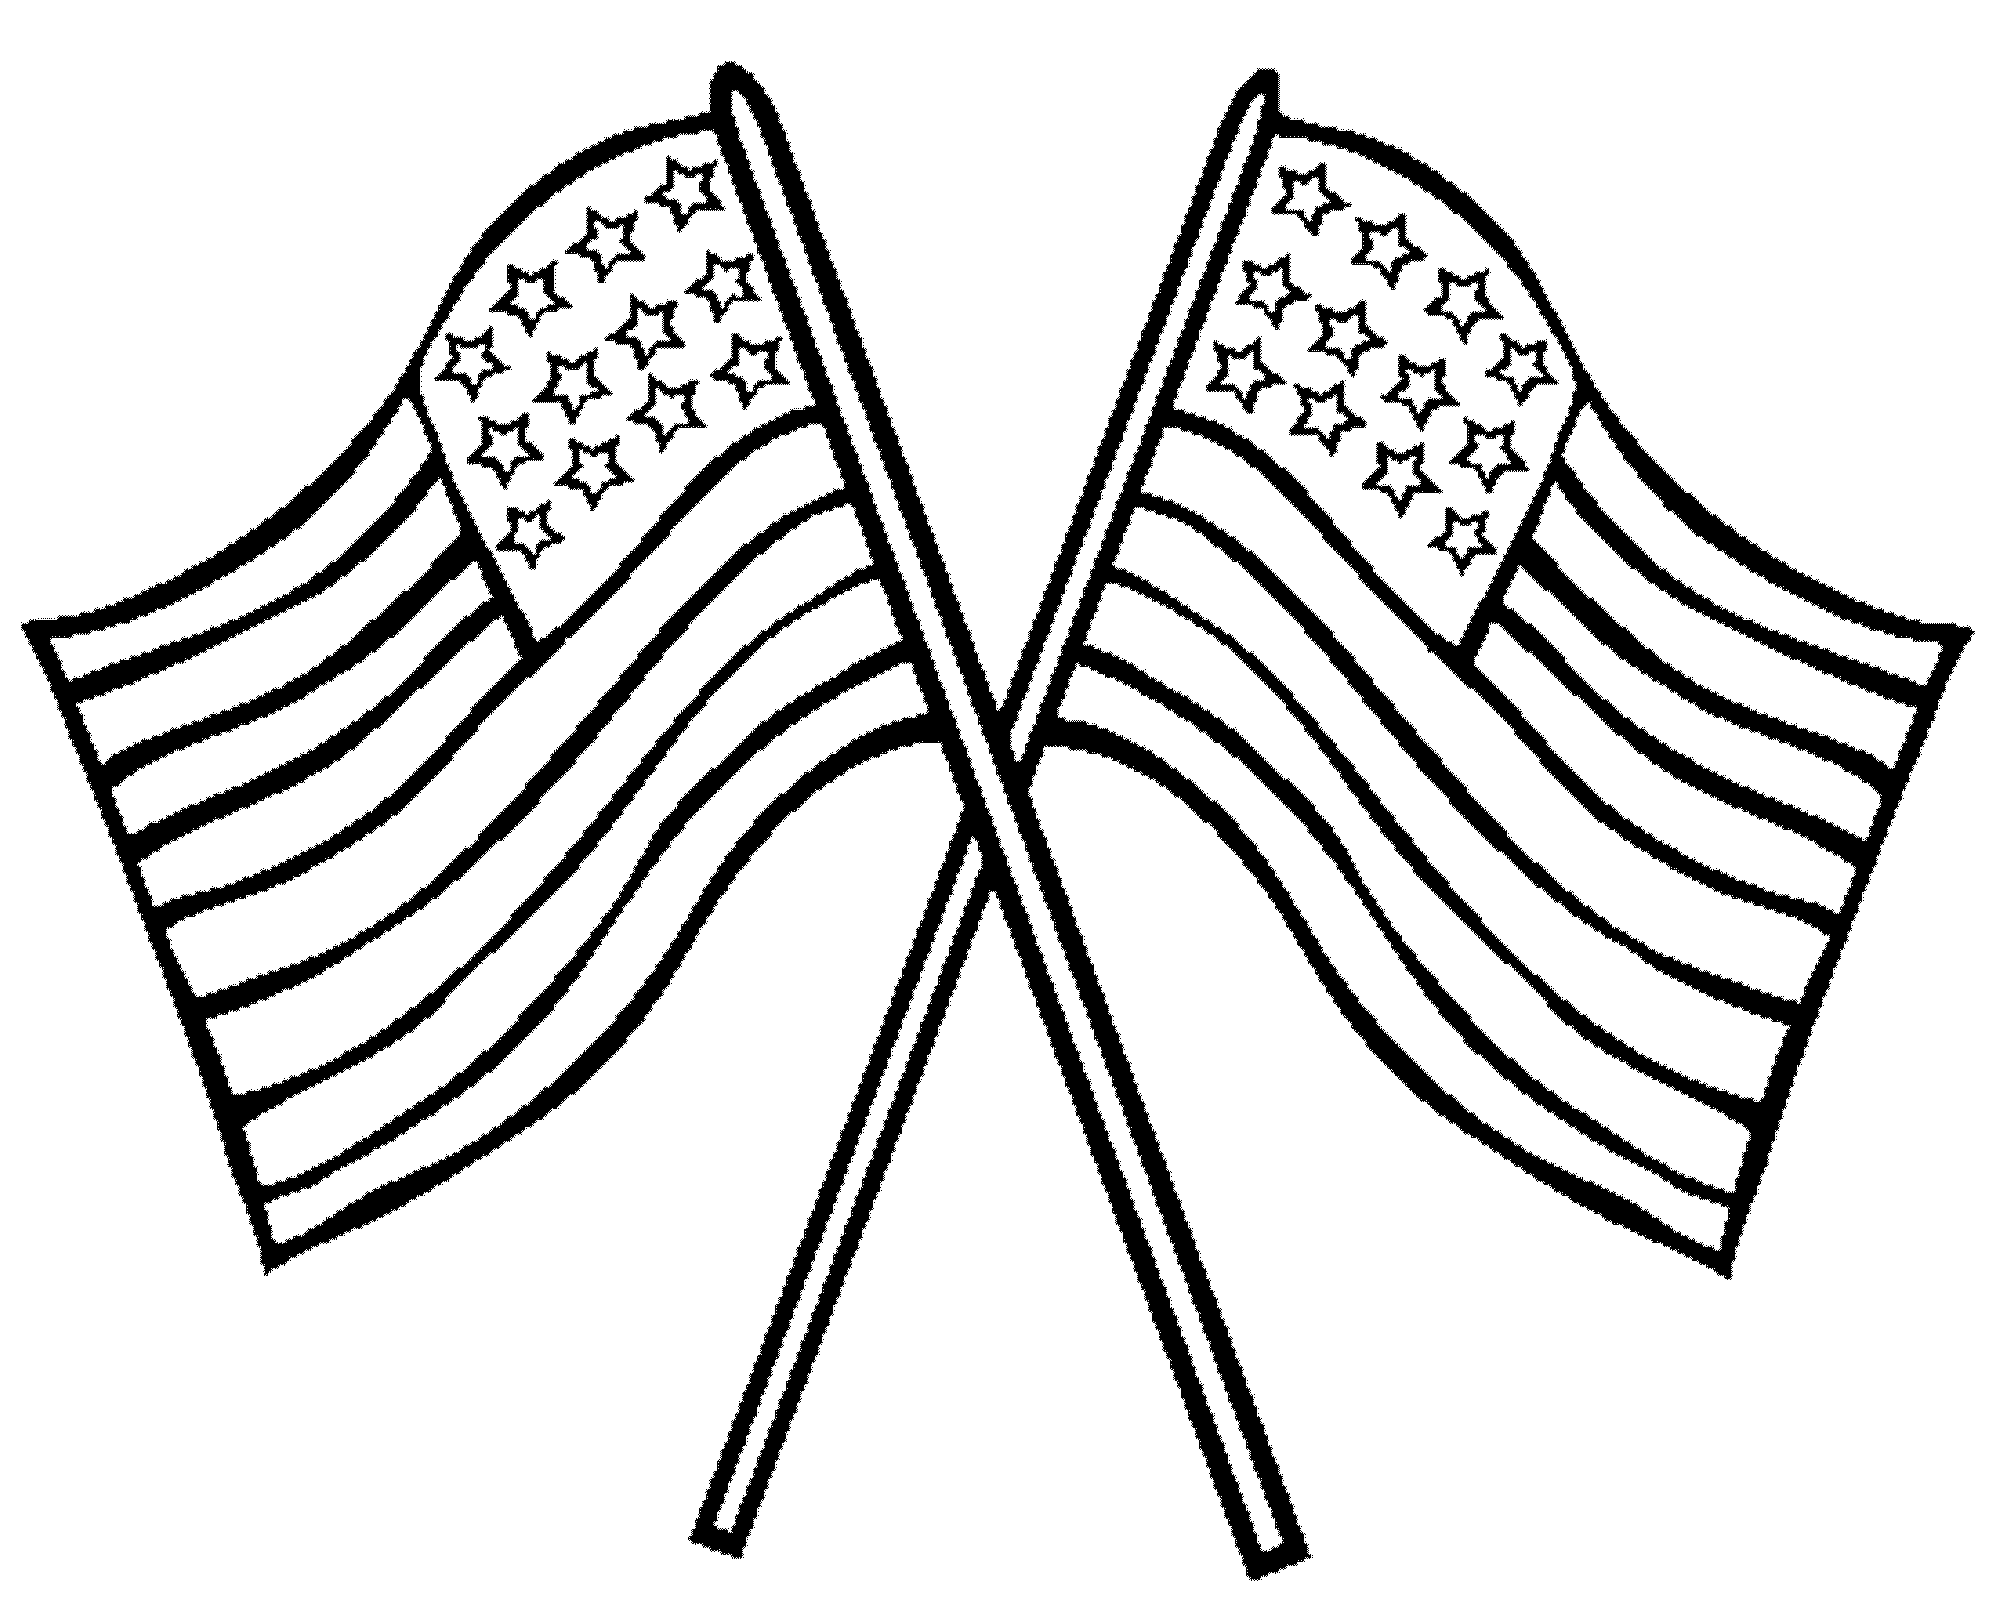 us flag coloring page american flag coloring pages best coloring pages for kids us flag page coloring